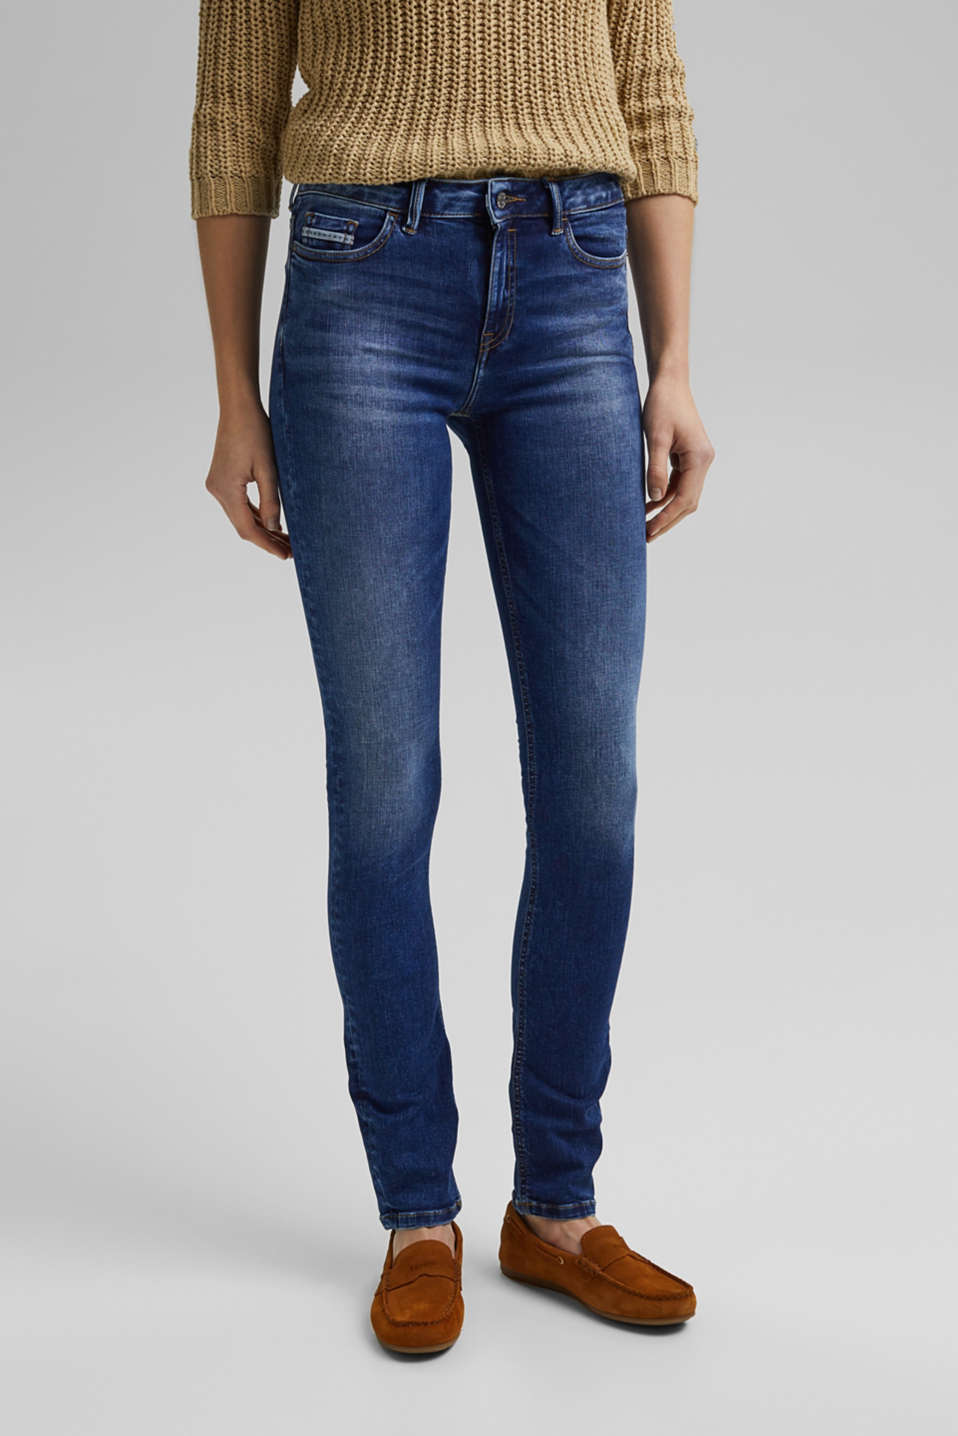 Esprit - Stretchjeans met washed-out effecten